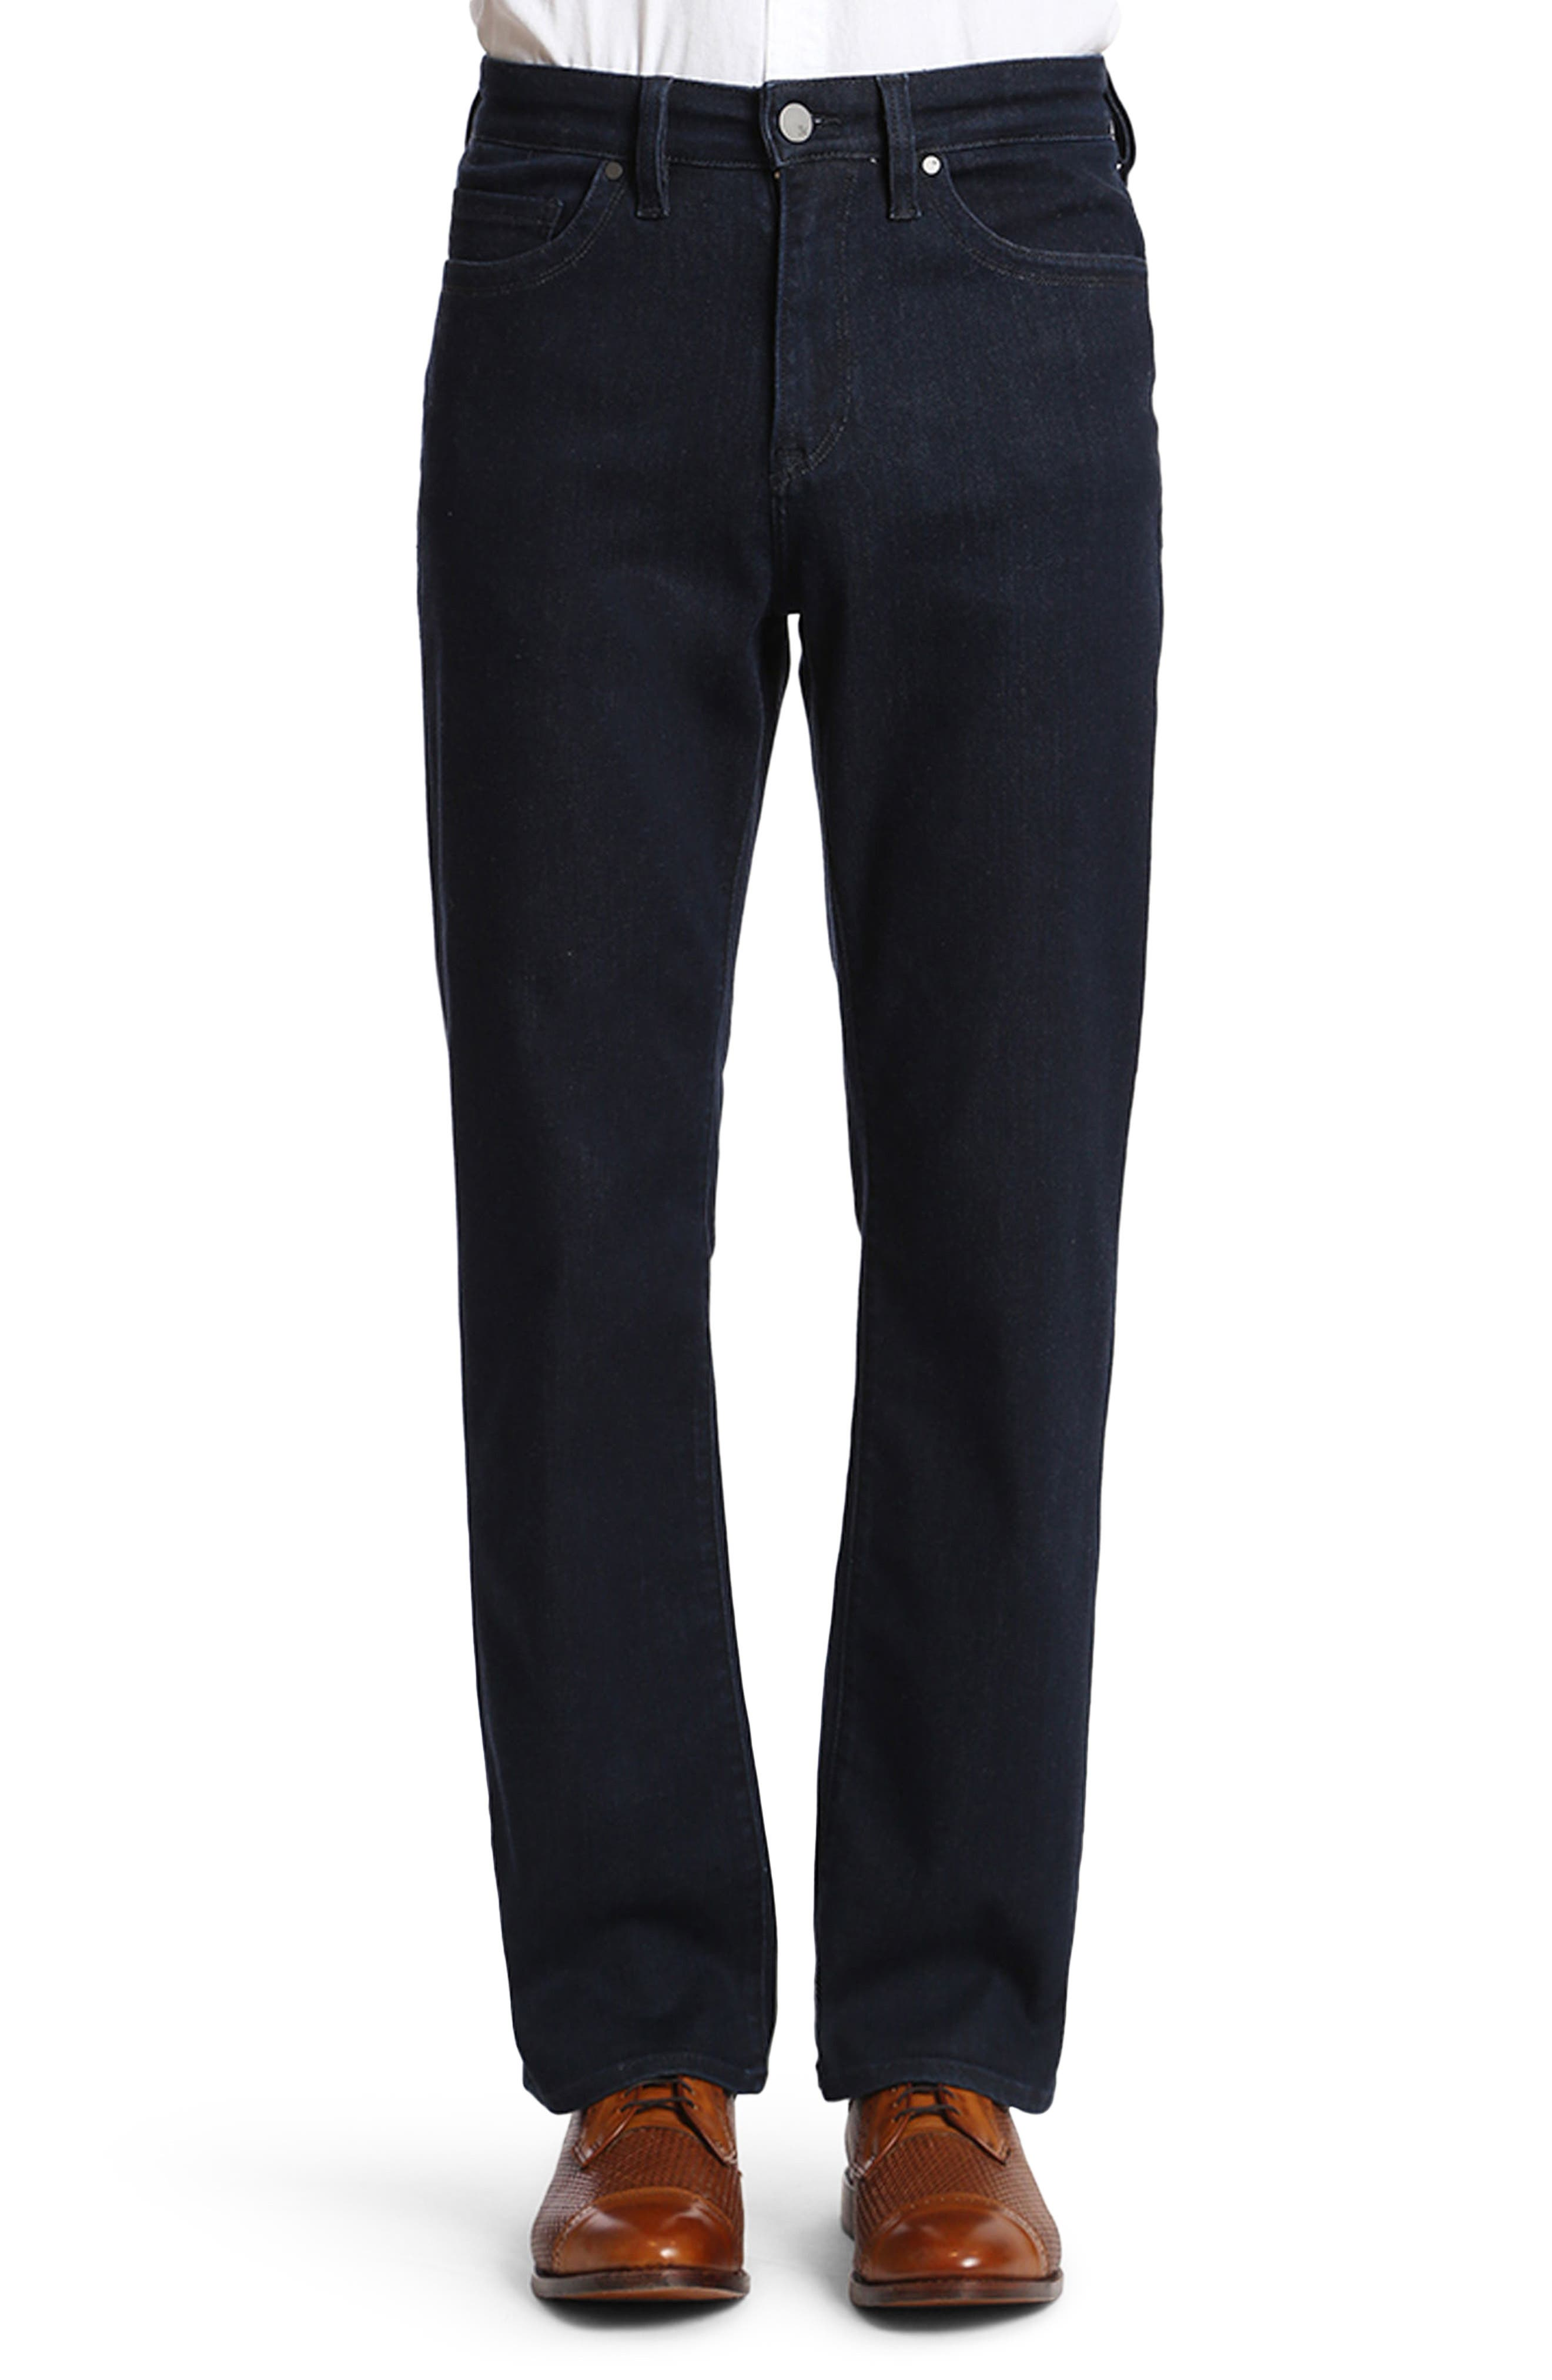 Charisma Relaxed Fit Jeans,                         Main,                         color, Rinse Rome